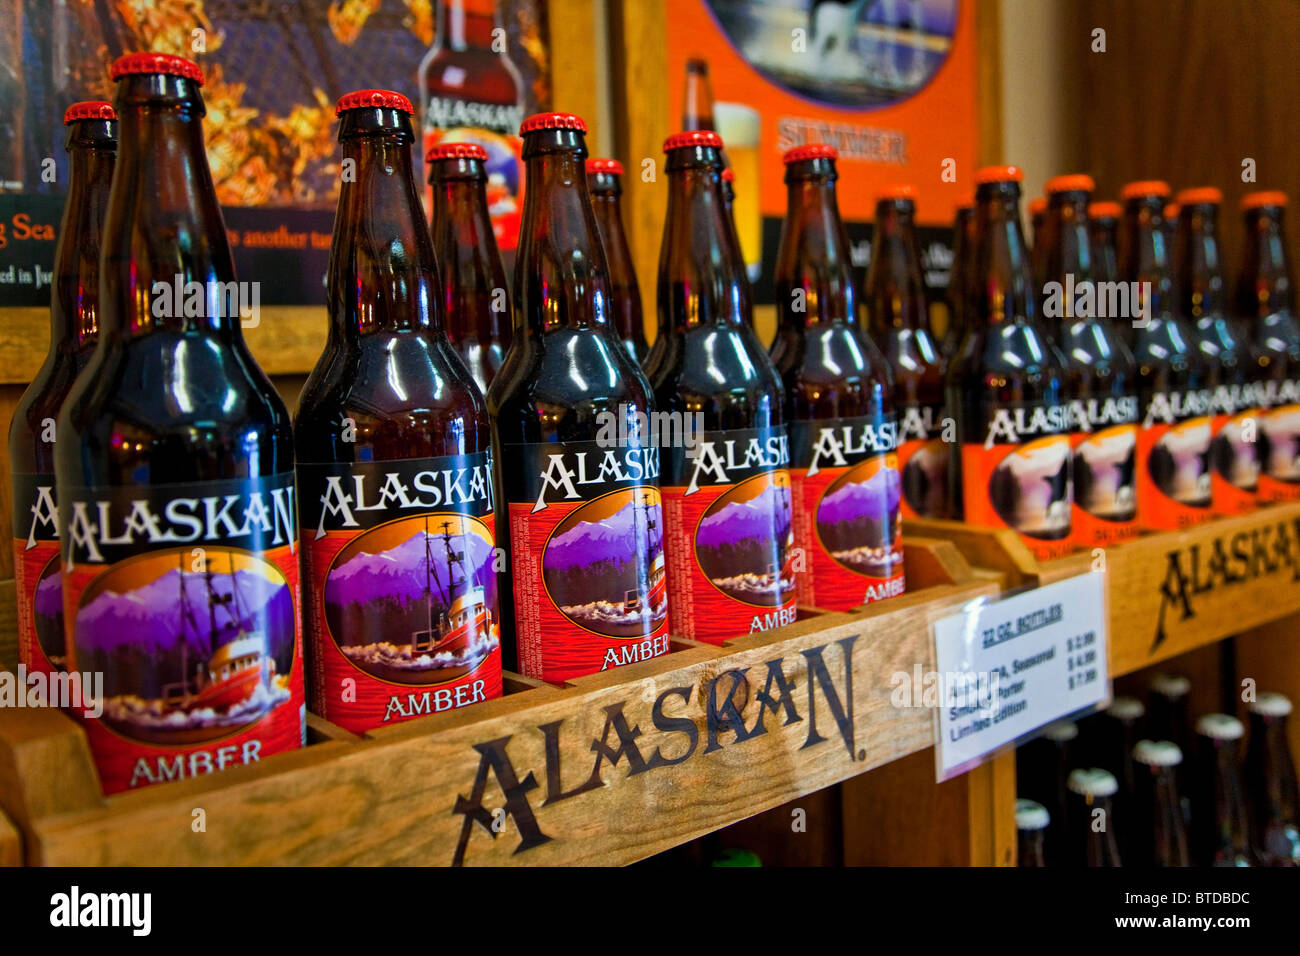 close up of the gift shop beer display at the alaskan brewing company stock photo 32256488 alamy. Black Bedroom Furniture Sets. Home Design Ideas